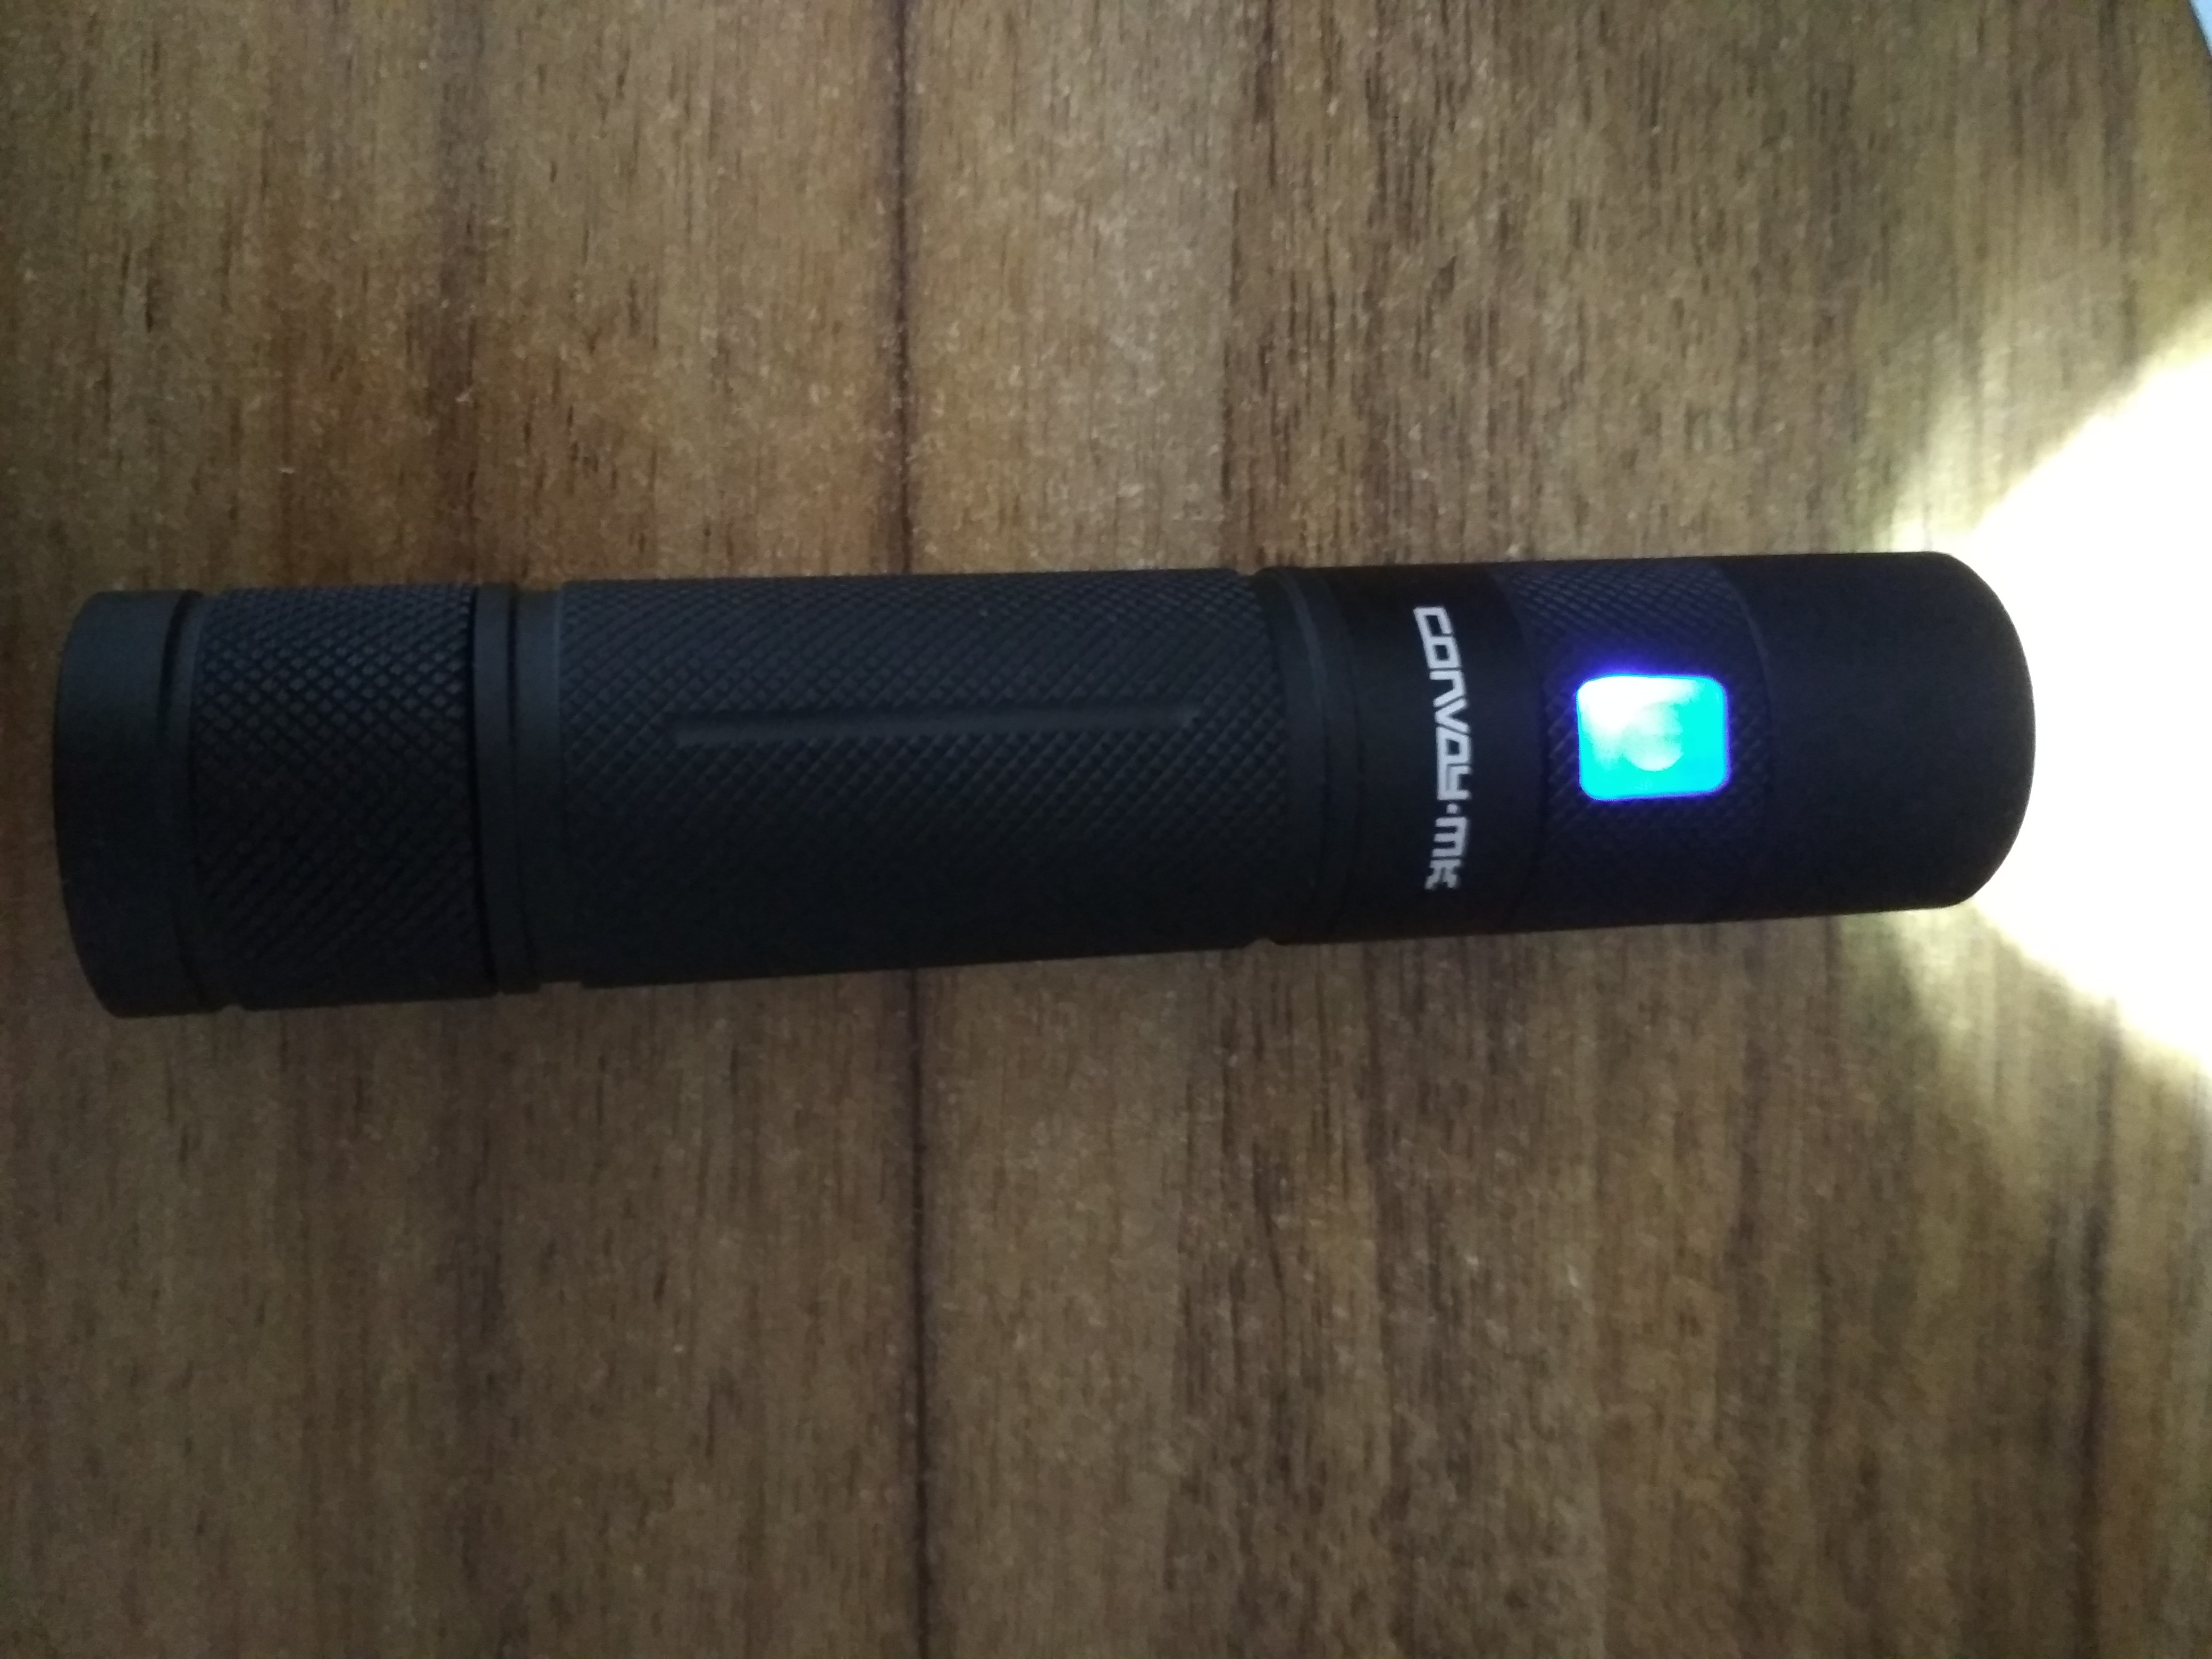 Convoy MK usb rechargeable light